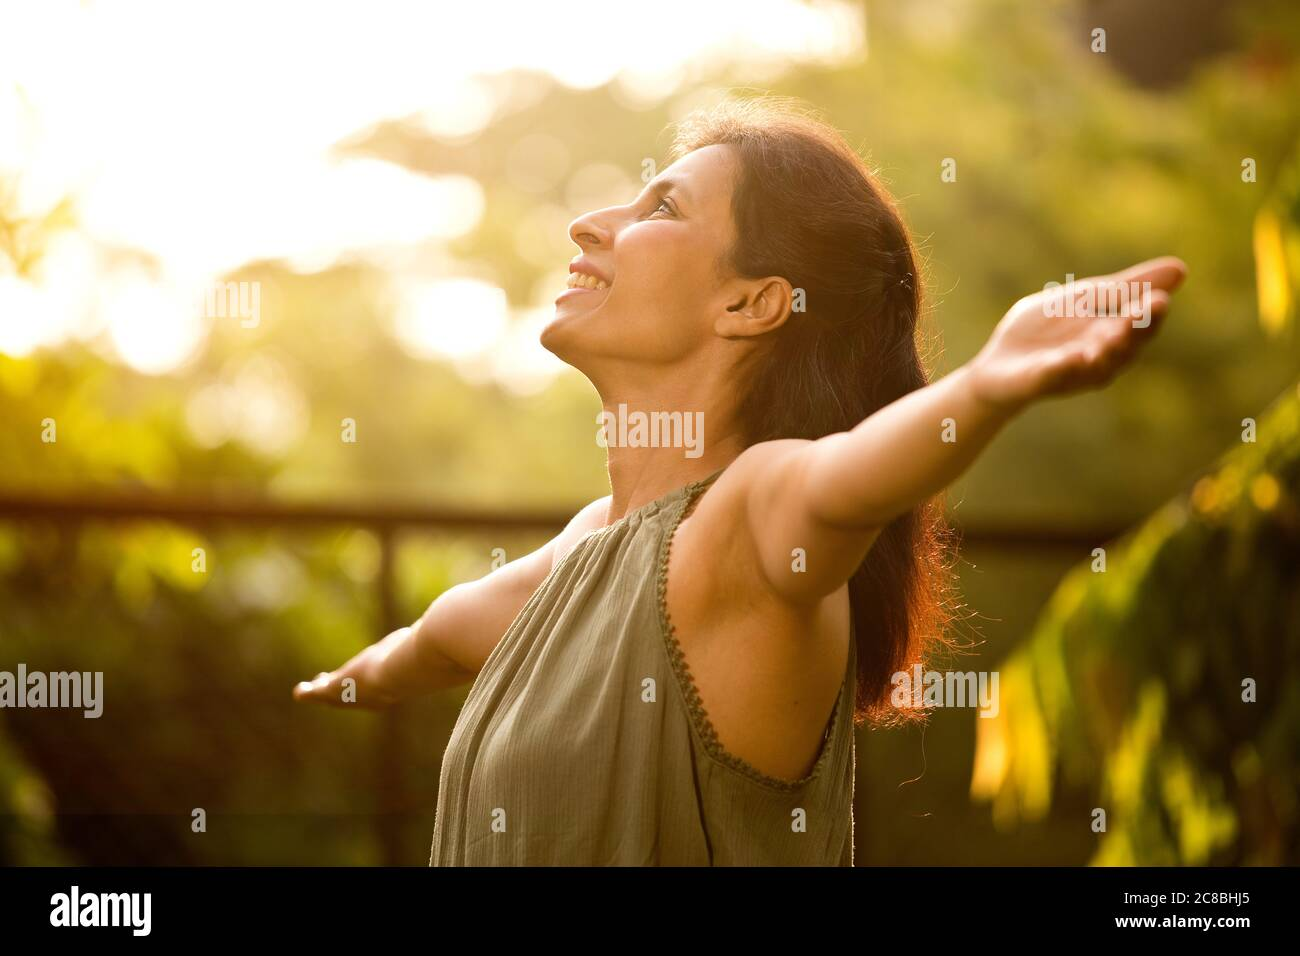 Beautiful woman relaxing and feeling nature at park Stock Photo